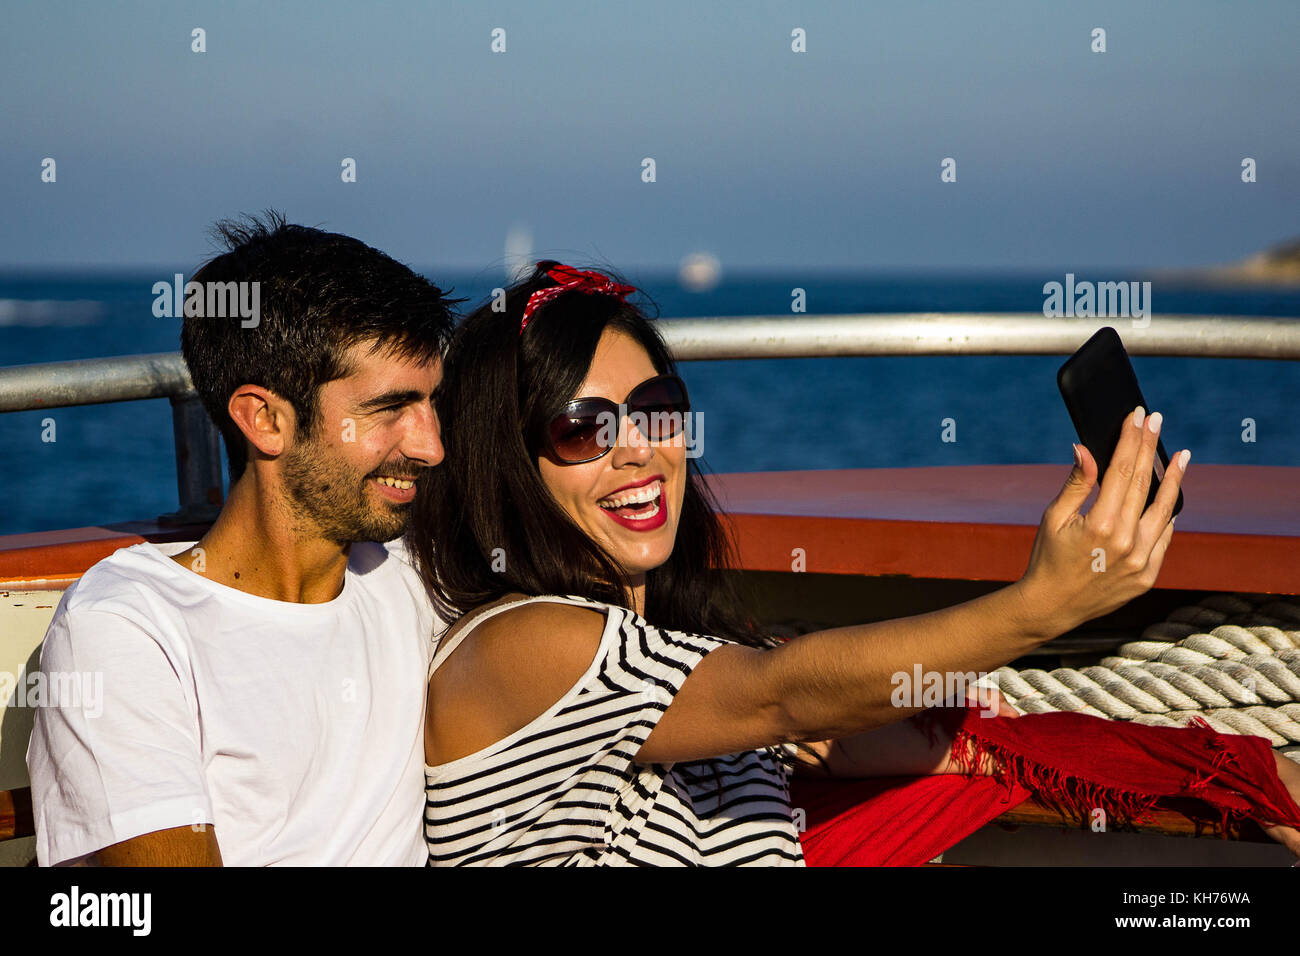 Couple selfie on a boat on vacation - Stock Image